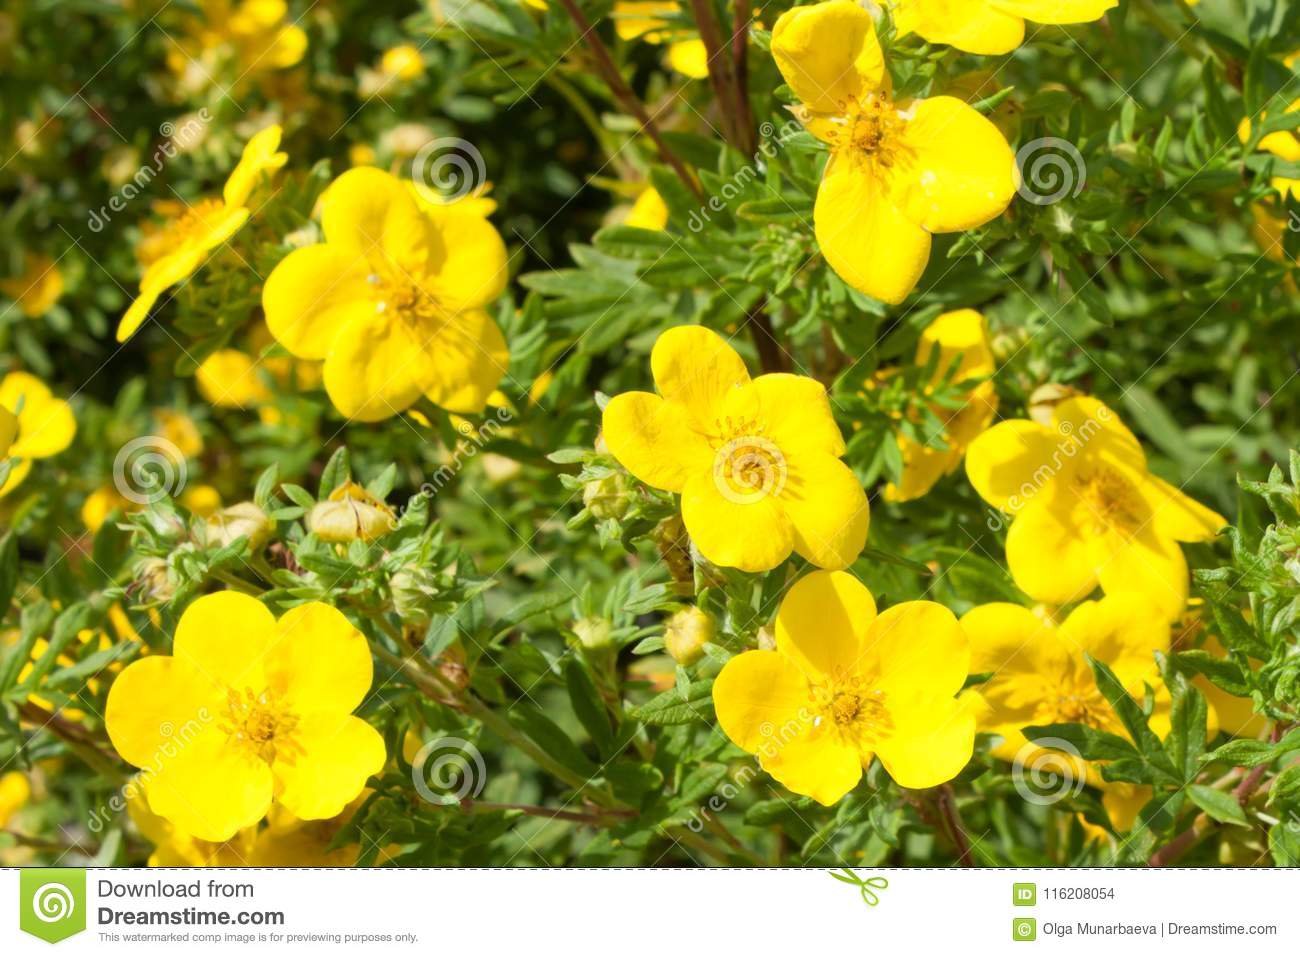 Yellow flowers potentilla fruticosa goldfinger in nature. wallpaper